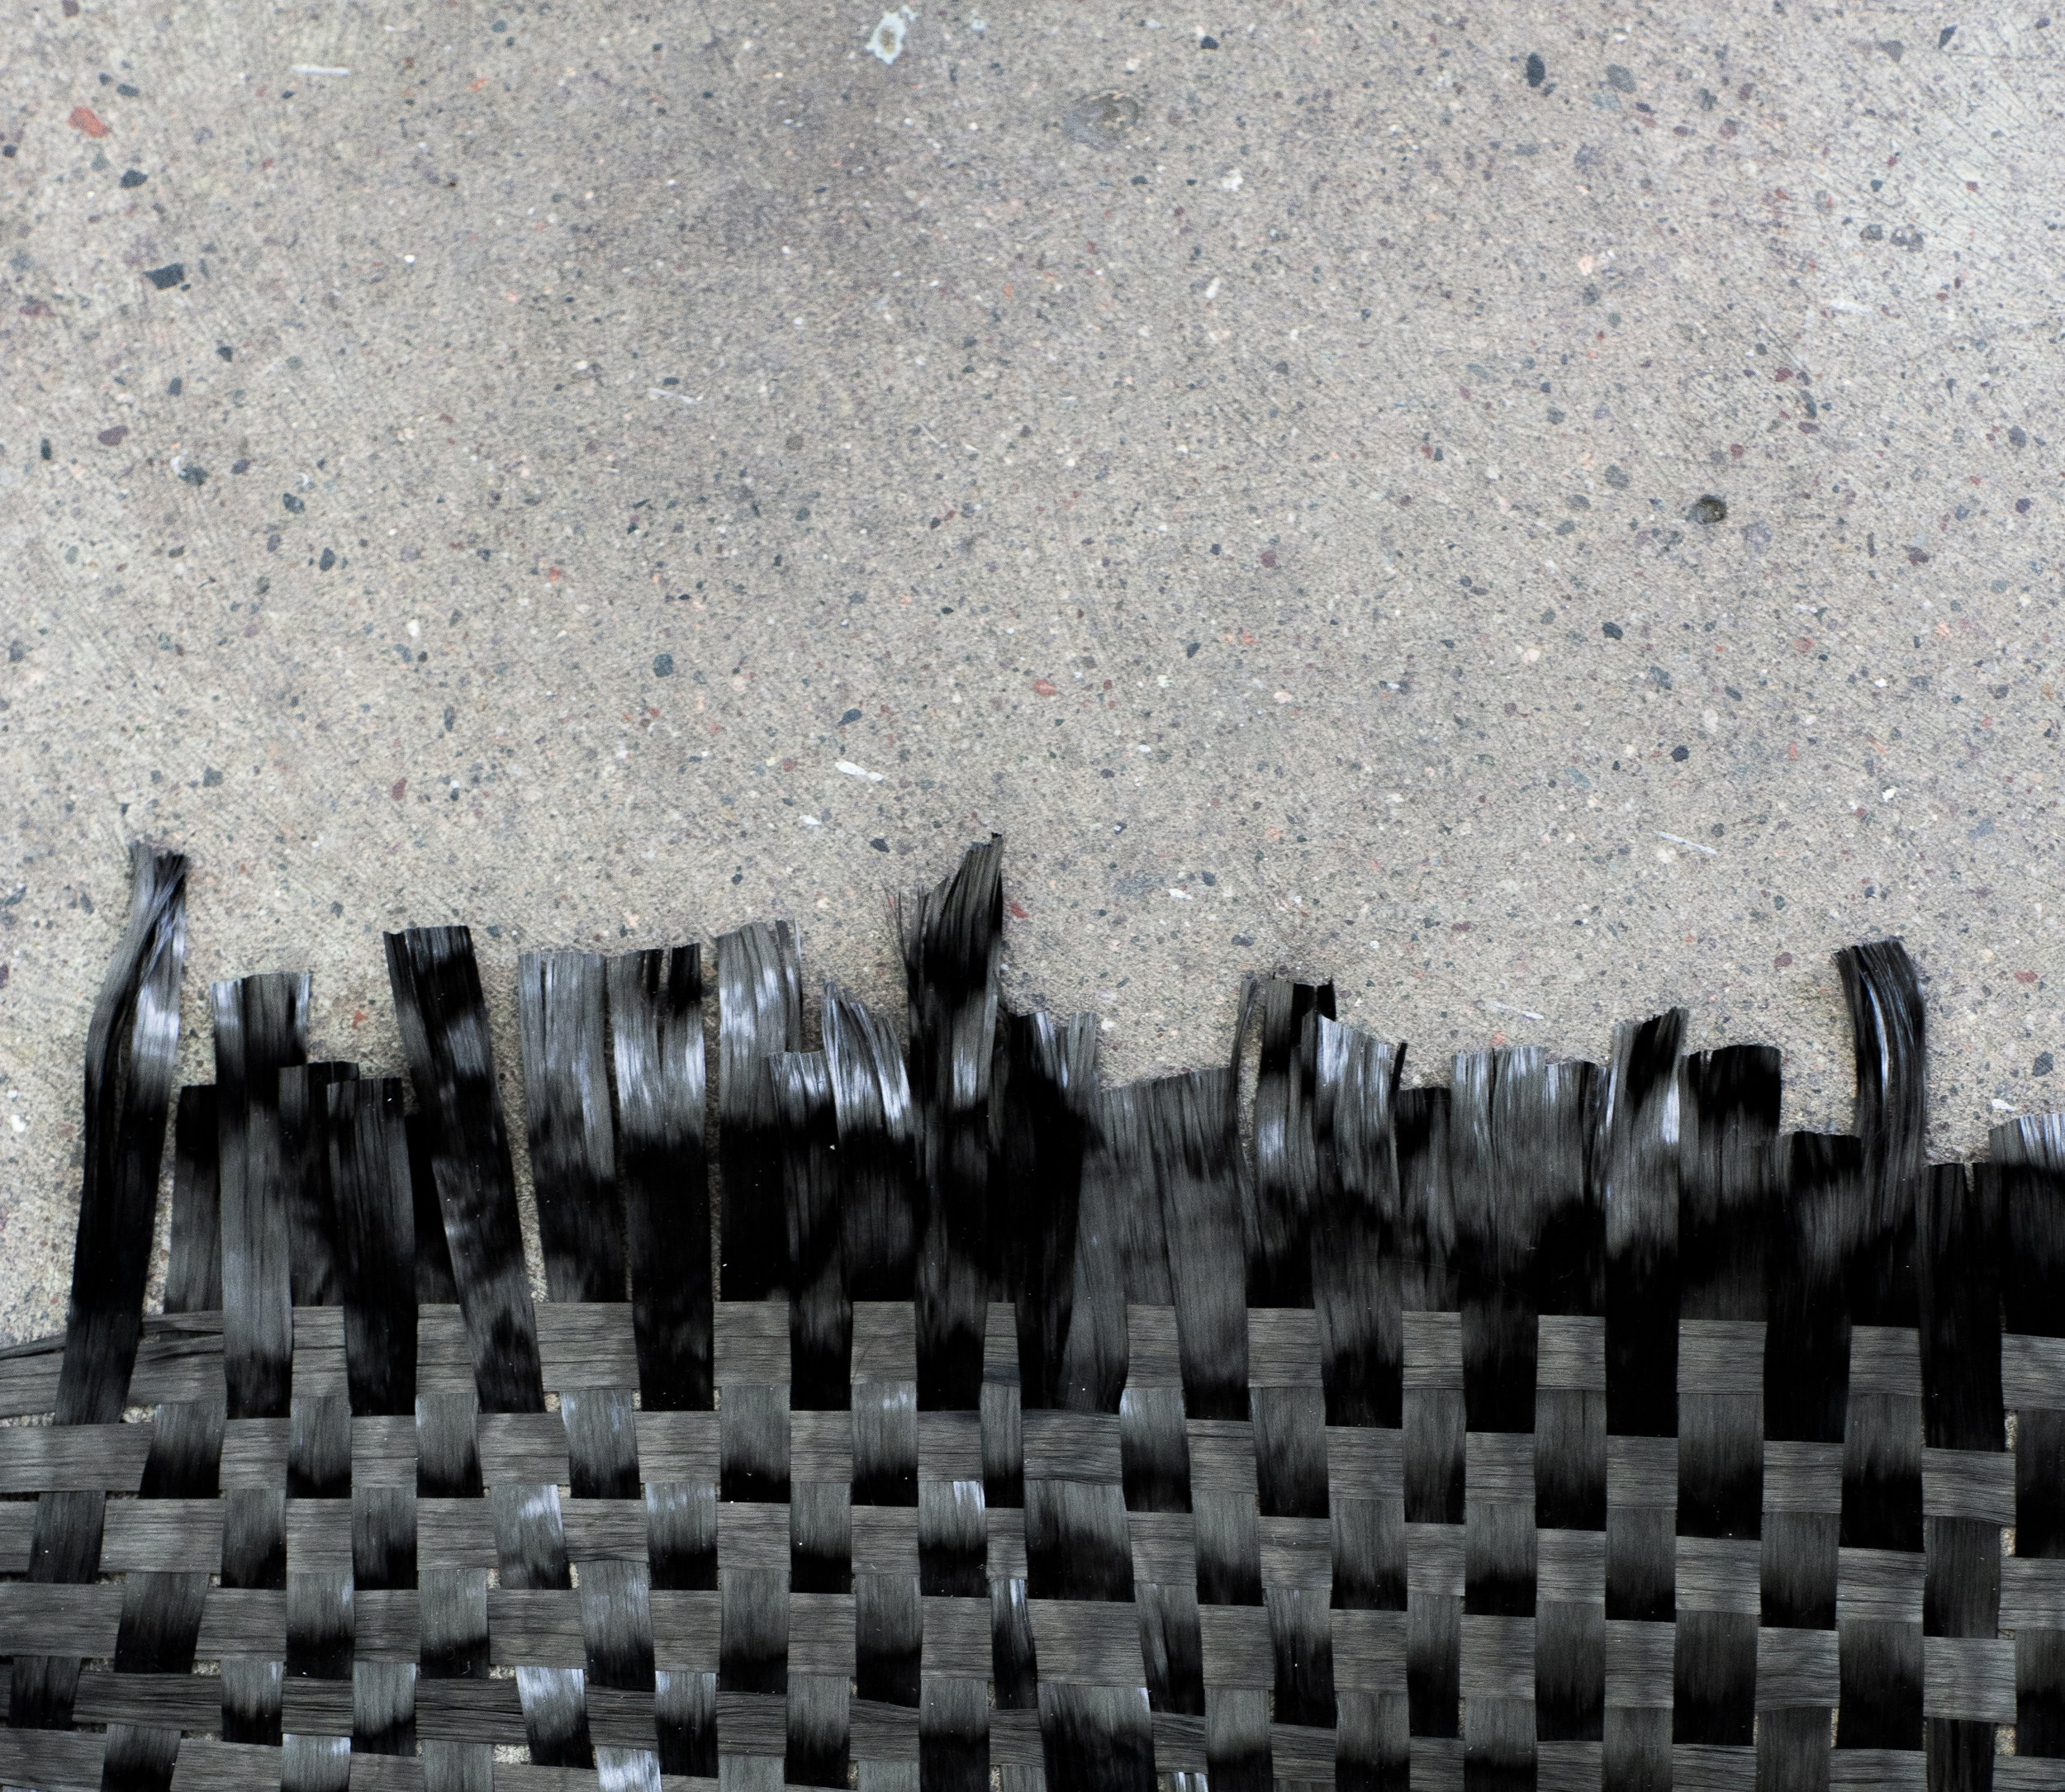 Woven activated carbon filter that can be hung as a tapestry, made into clothing, or used as a scarf to filter Volatile Organic Compounds from the air.